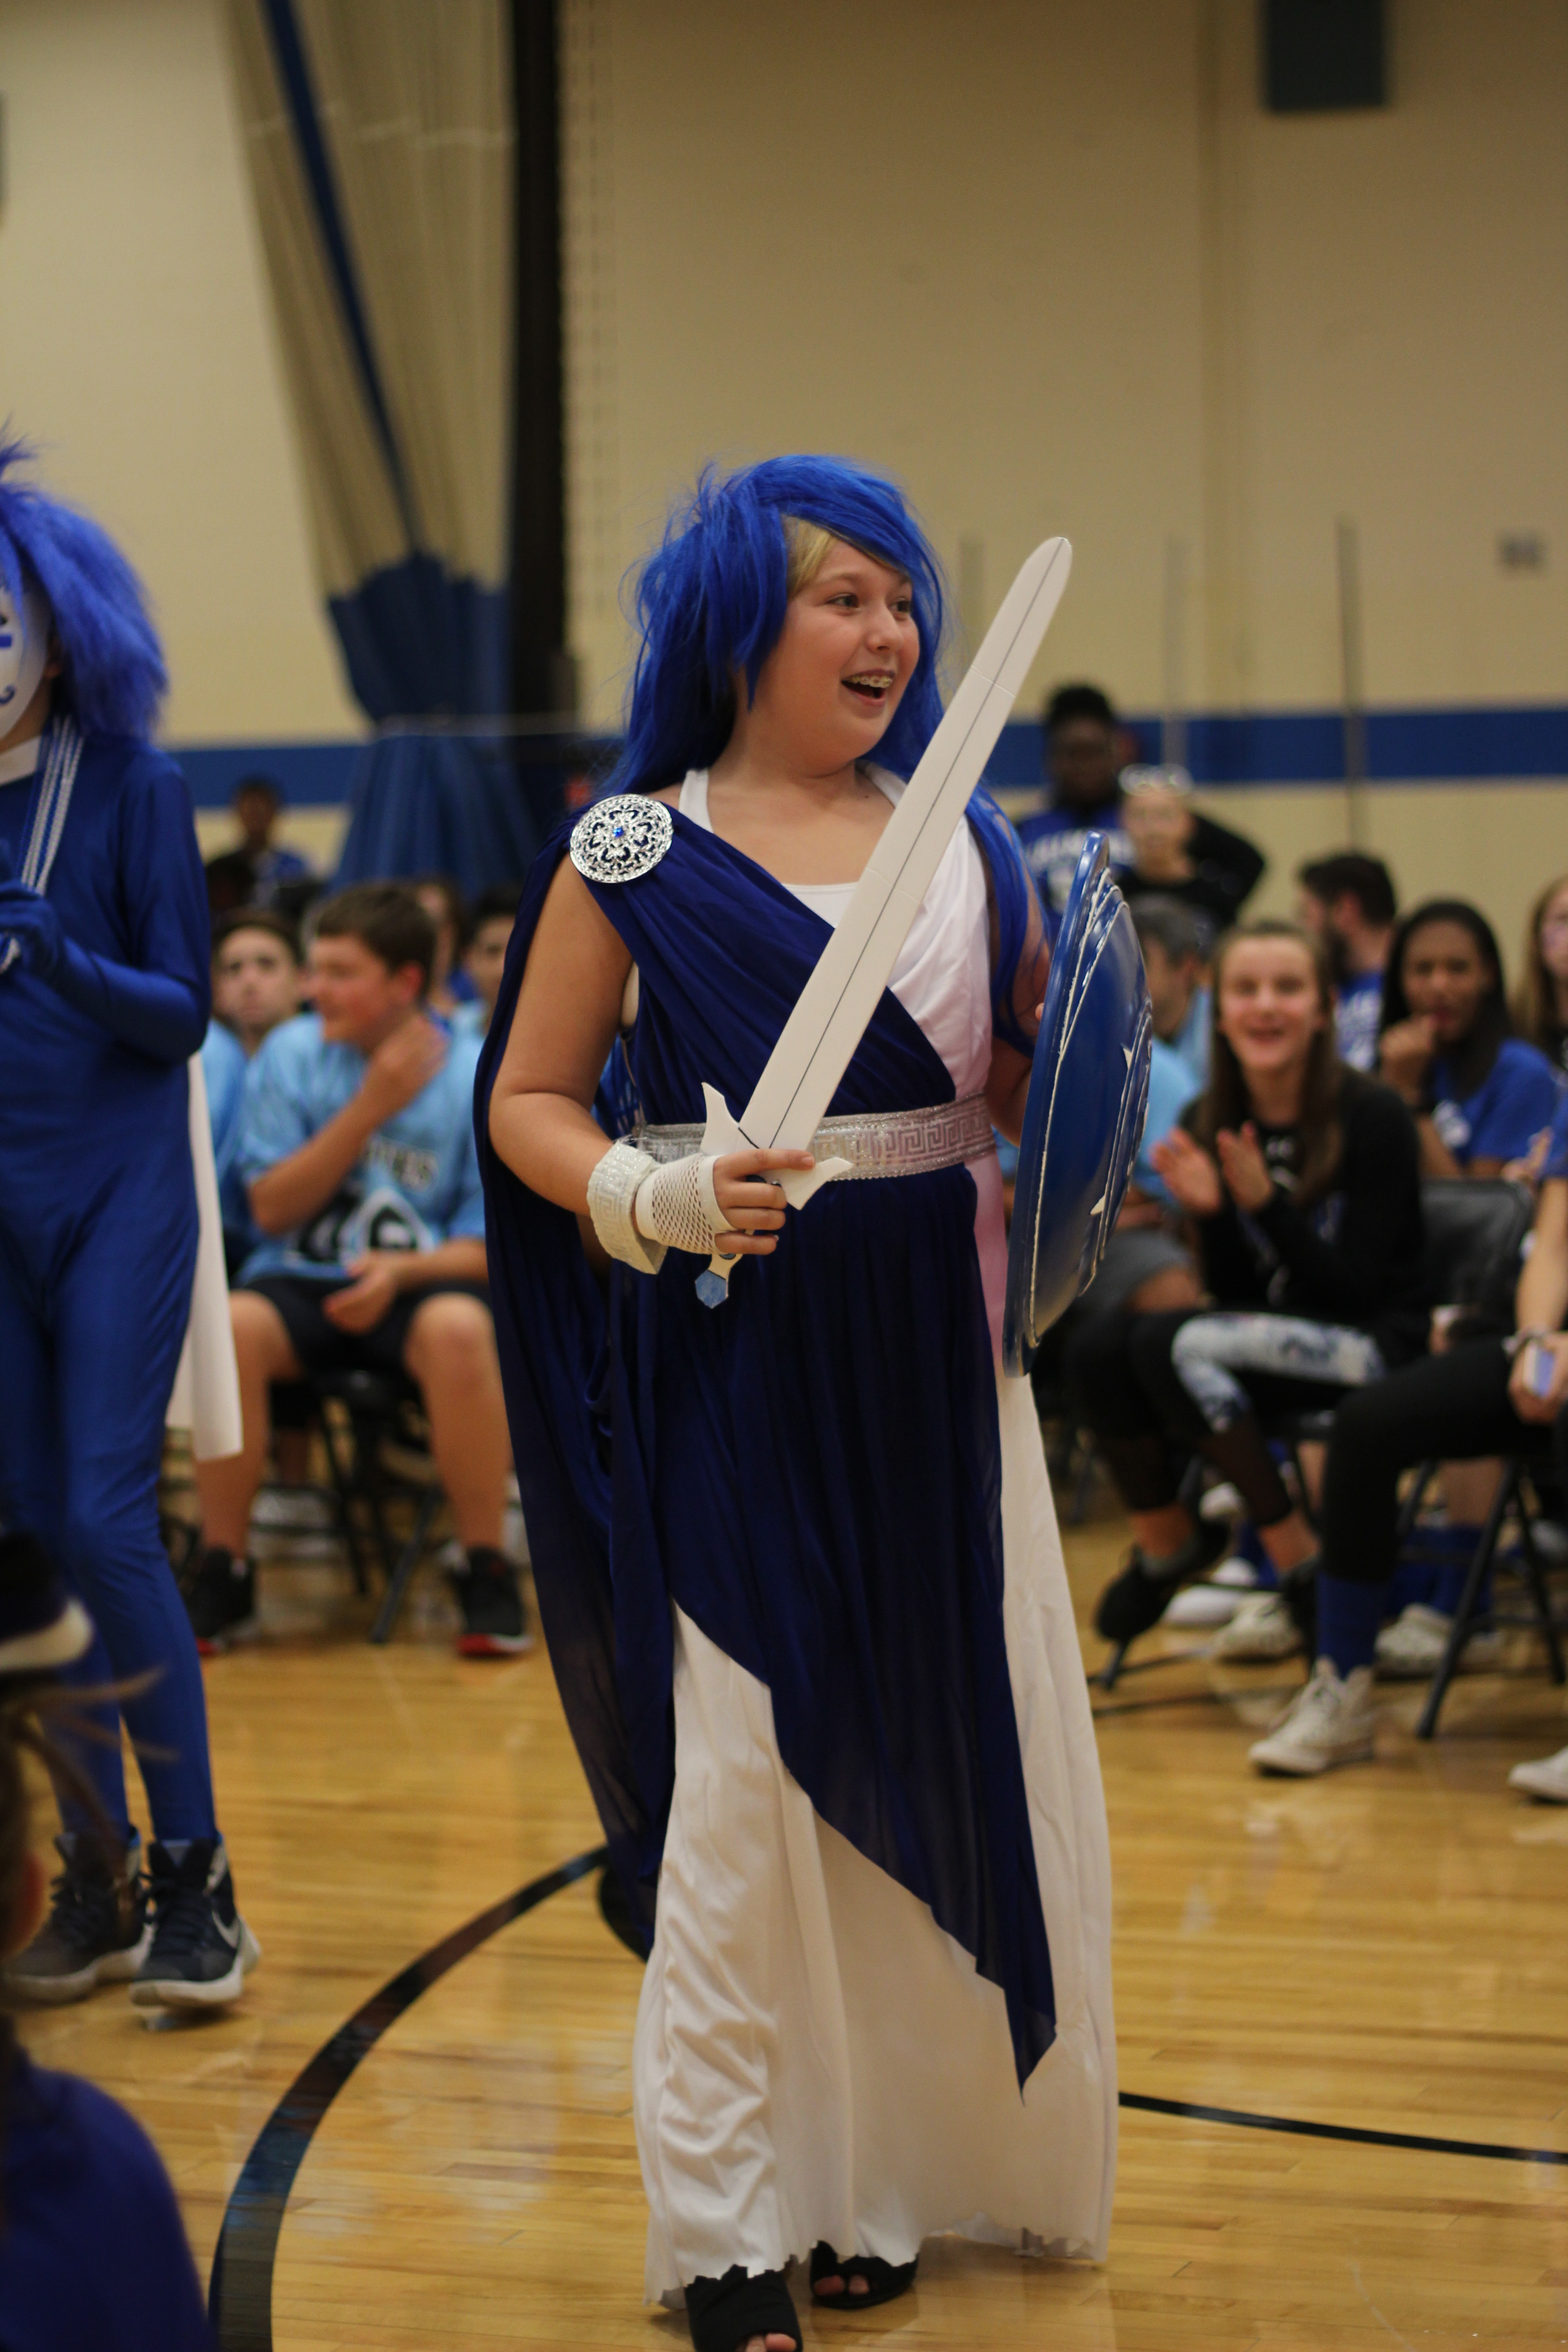 Student wins spirit competition